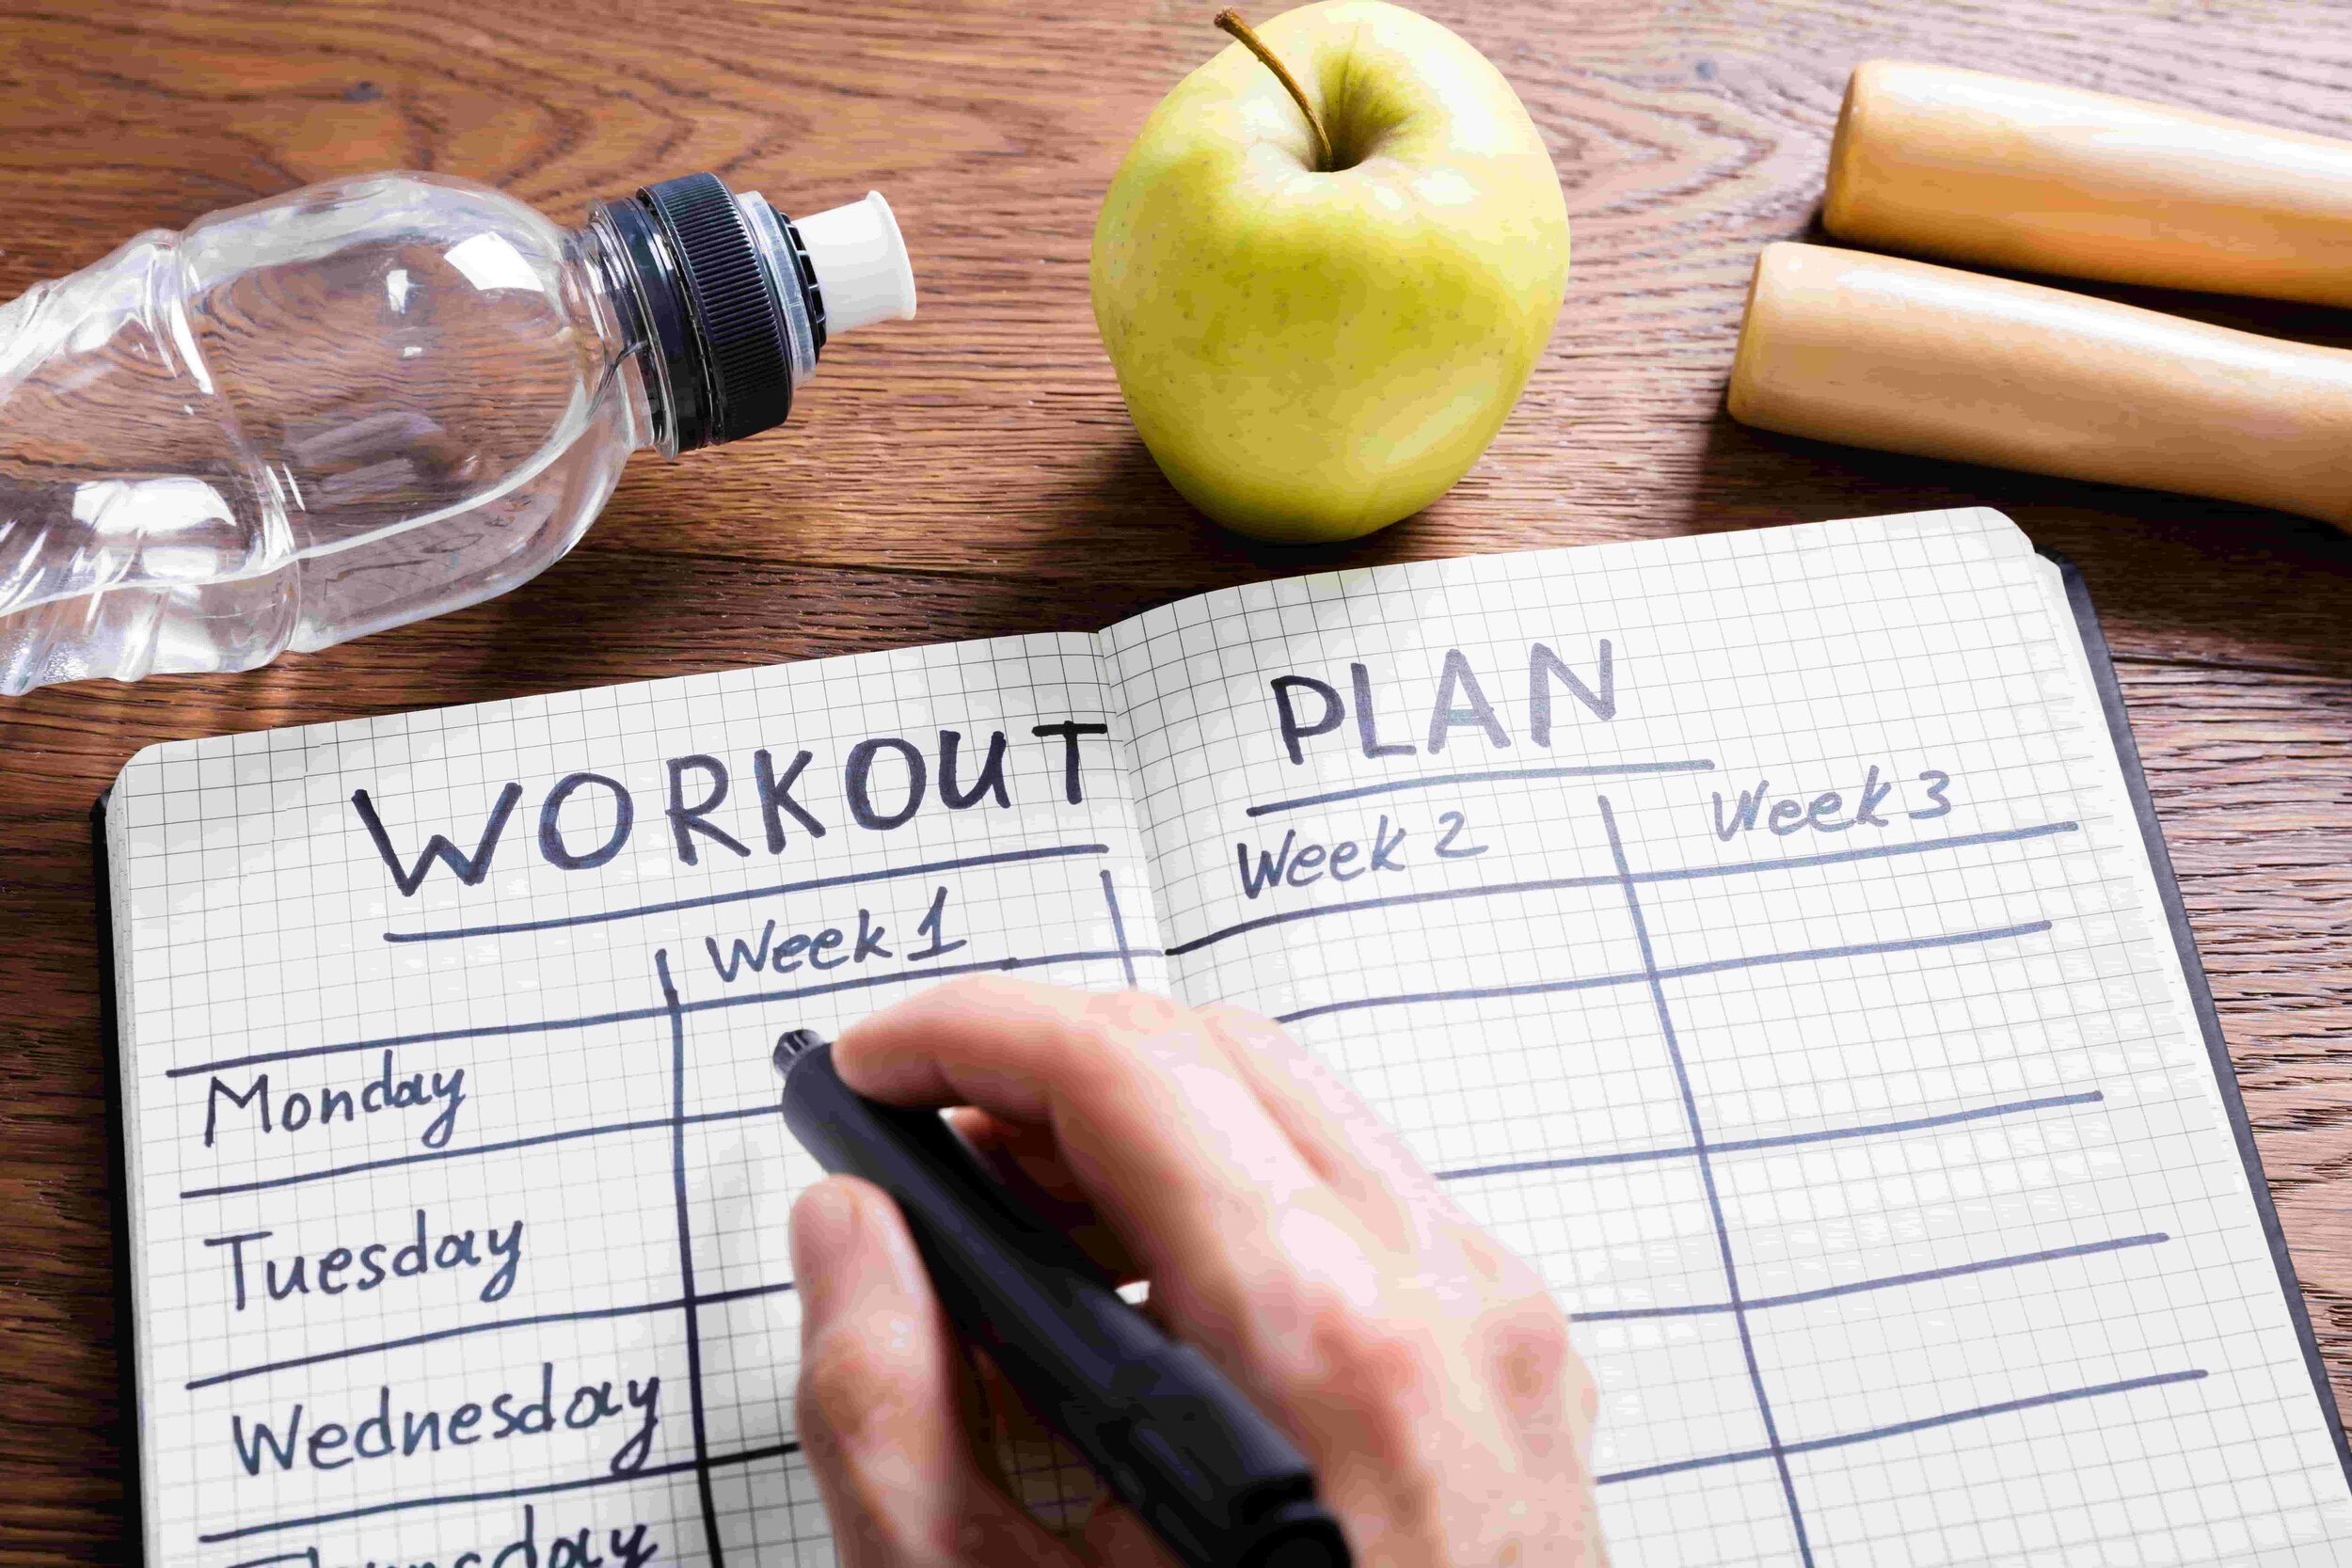 Keeping track of your workouts and successes can encourage working out.